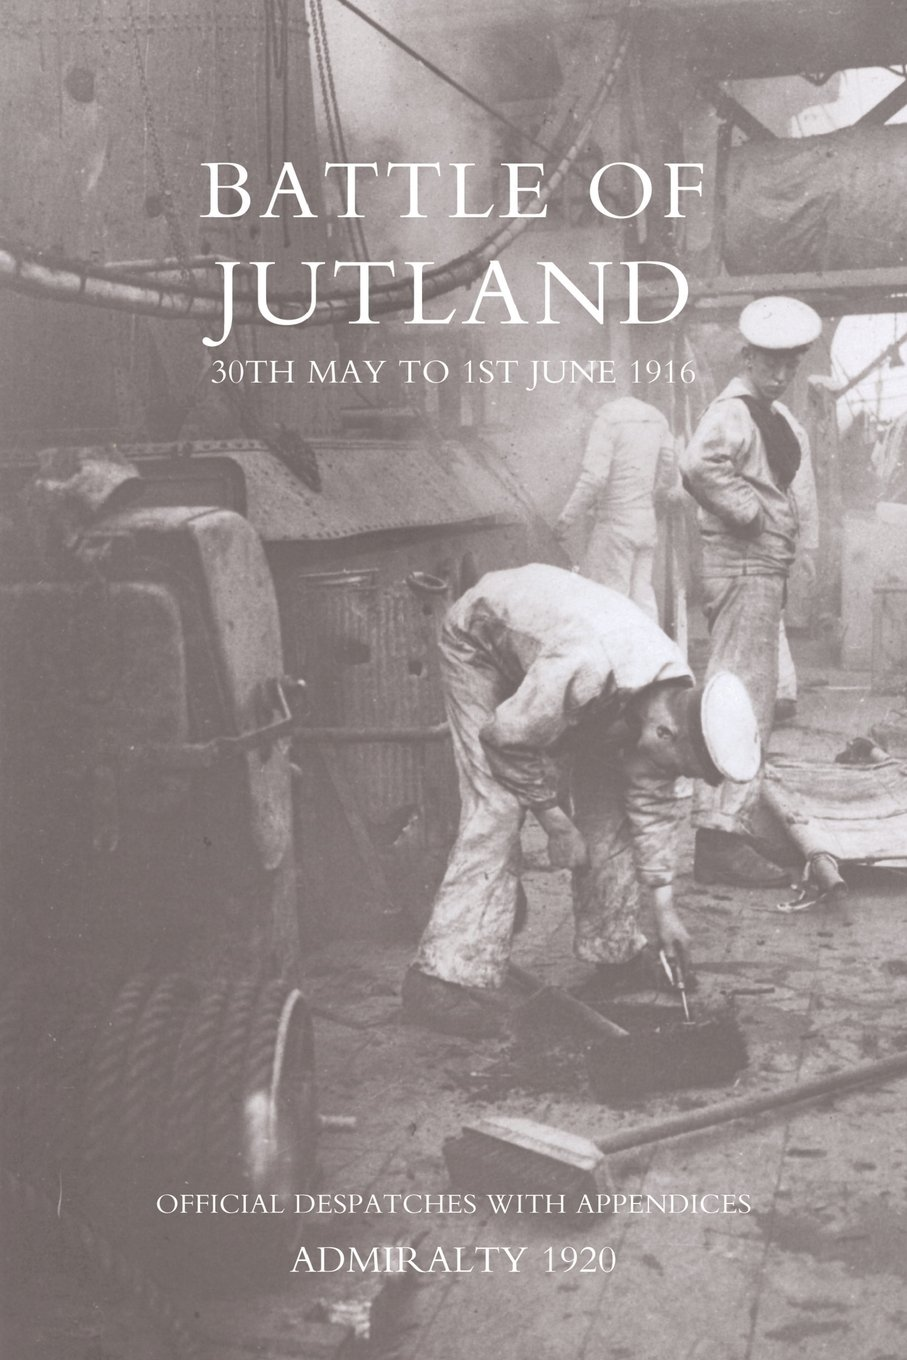 Download BATTLE OF JUTLAND 30TH MAY TO 1ST JUNE1916 - OFFICIAL DESPATCHES WITH APPENDICES pdf